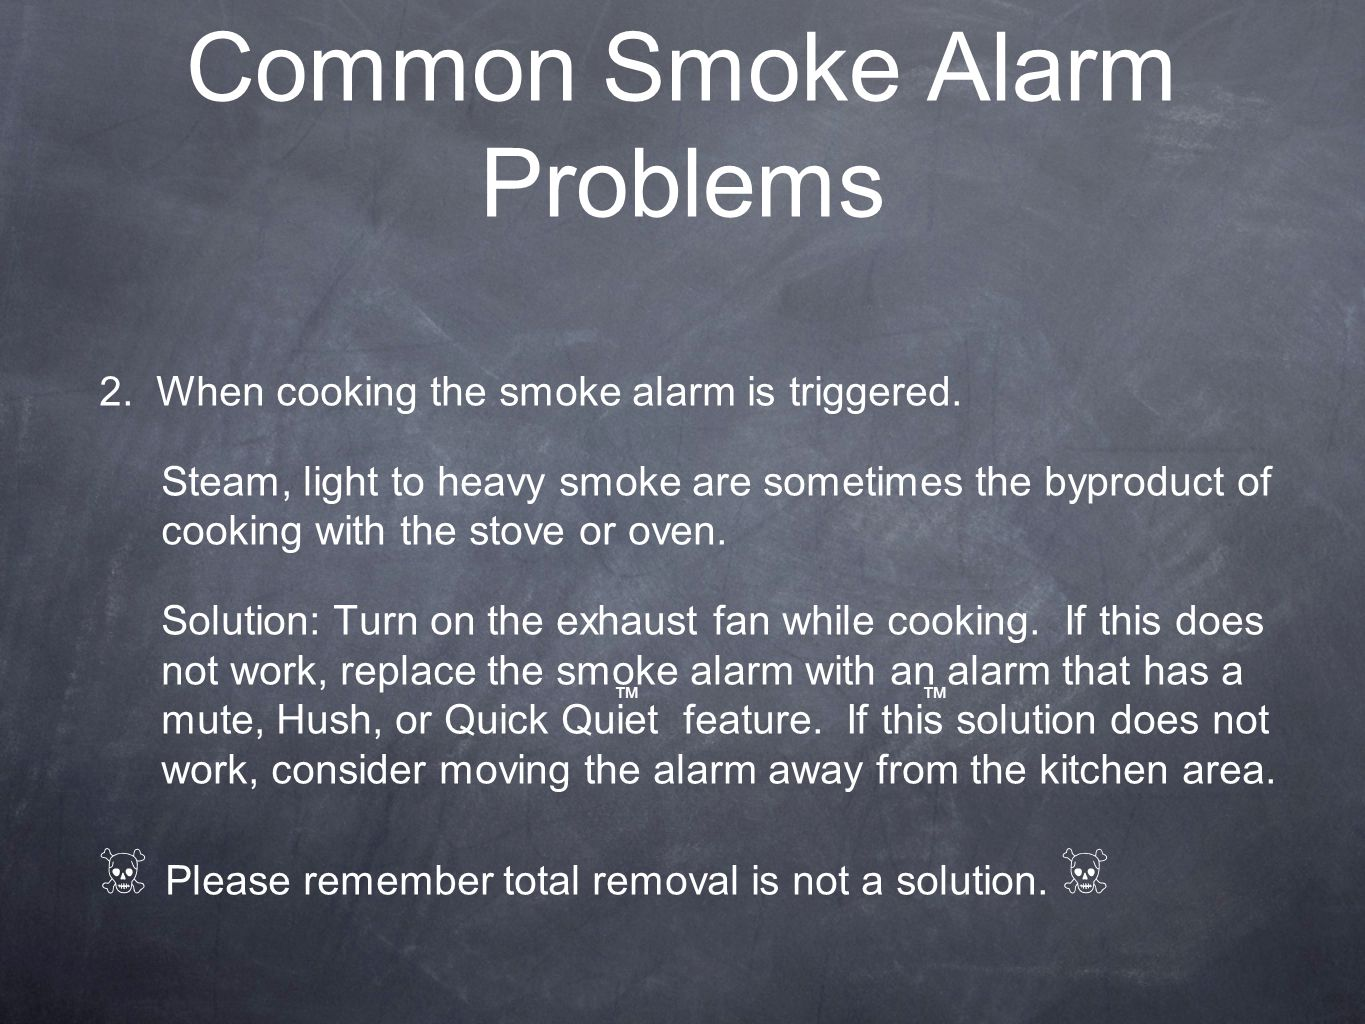 Common Smoke Alarm Problems 2.When cooking the smoke alarm is triggered.